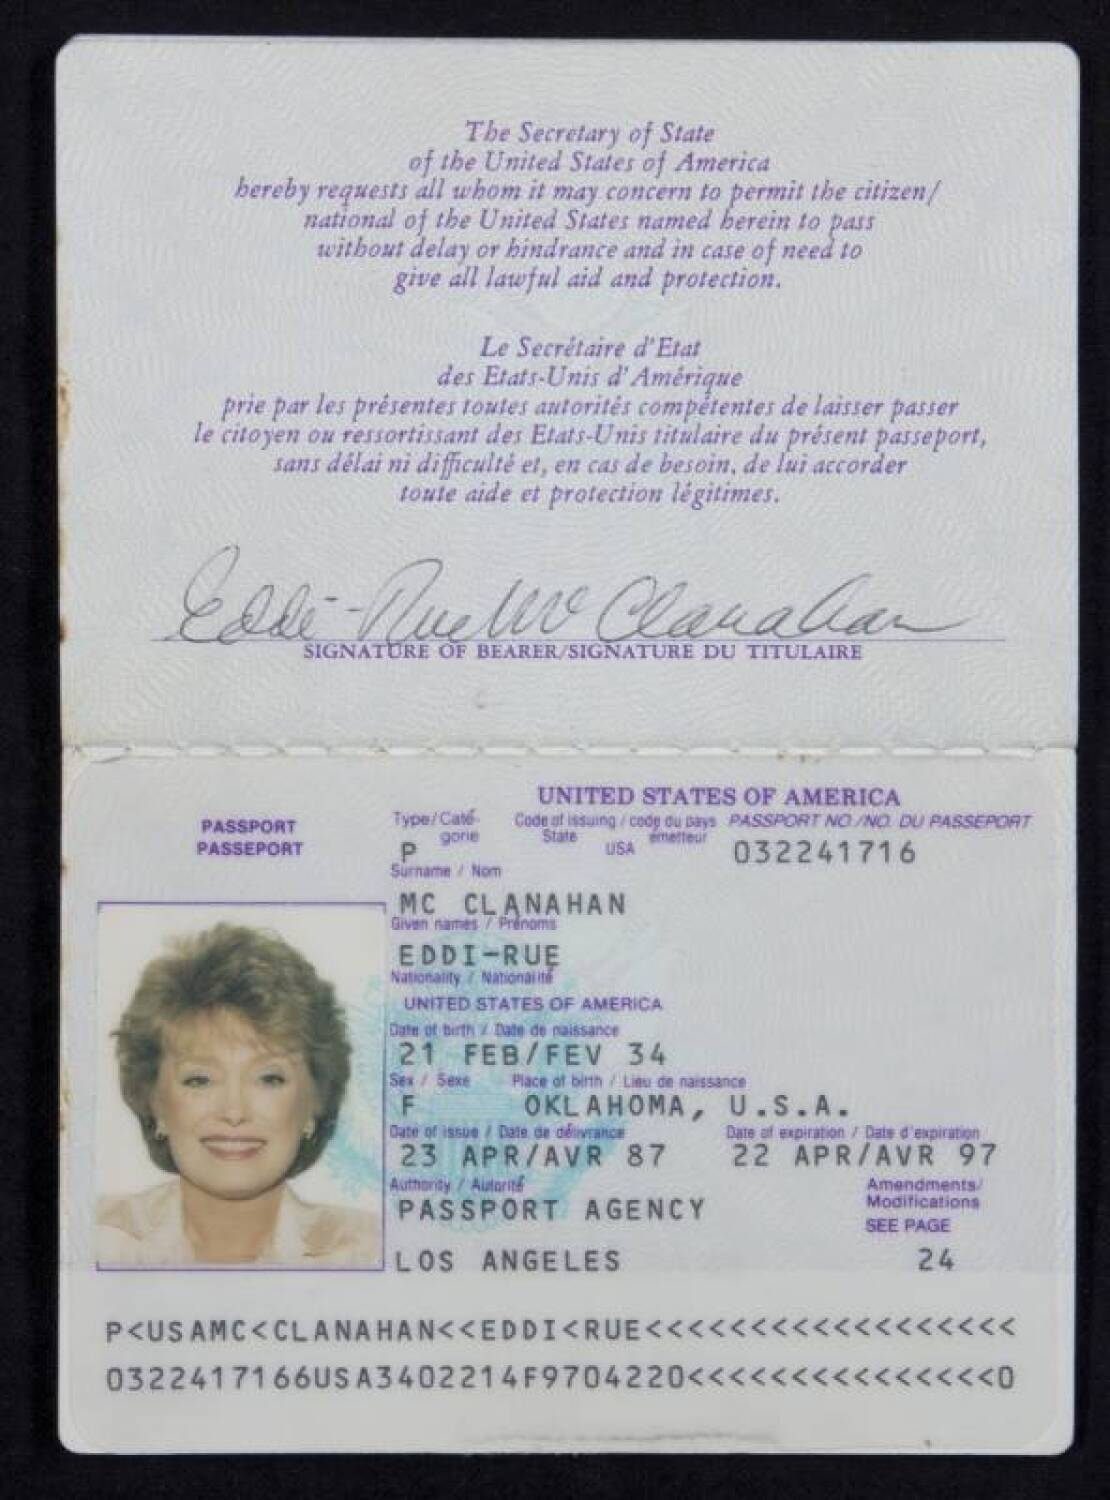 Rue mcclanahan date of birth in Melbourne